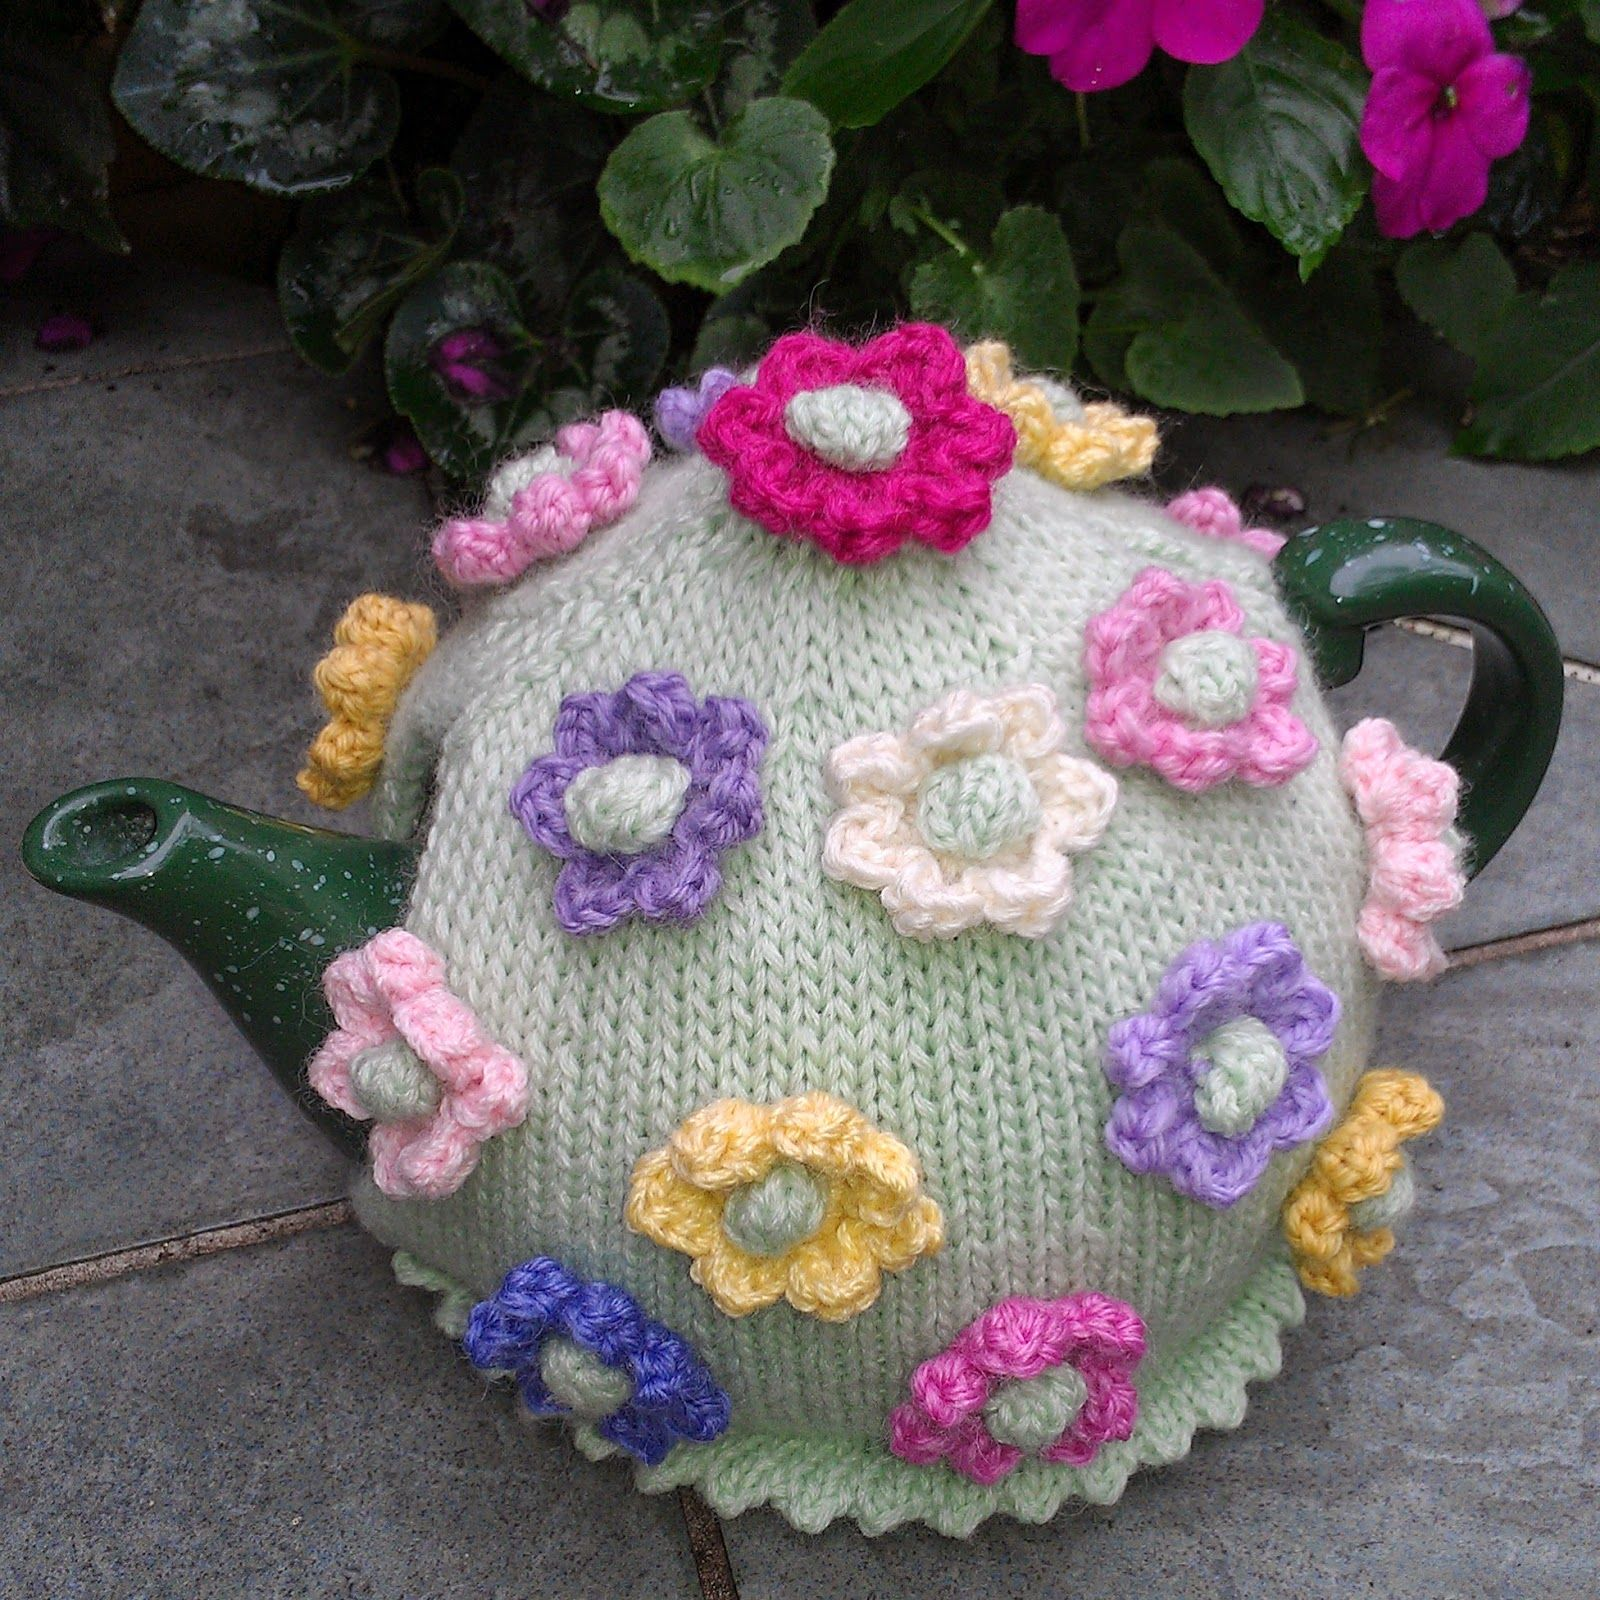 Craft a cure for cancer free tea cosy patterns flower tea cosies craft a cure for cancer free tea cosy patterns flower tea cosies bankloansurffo Images